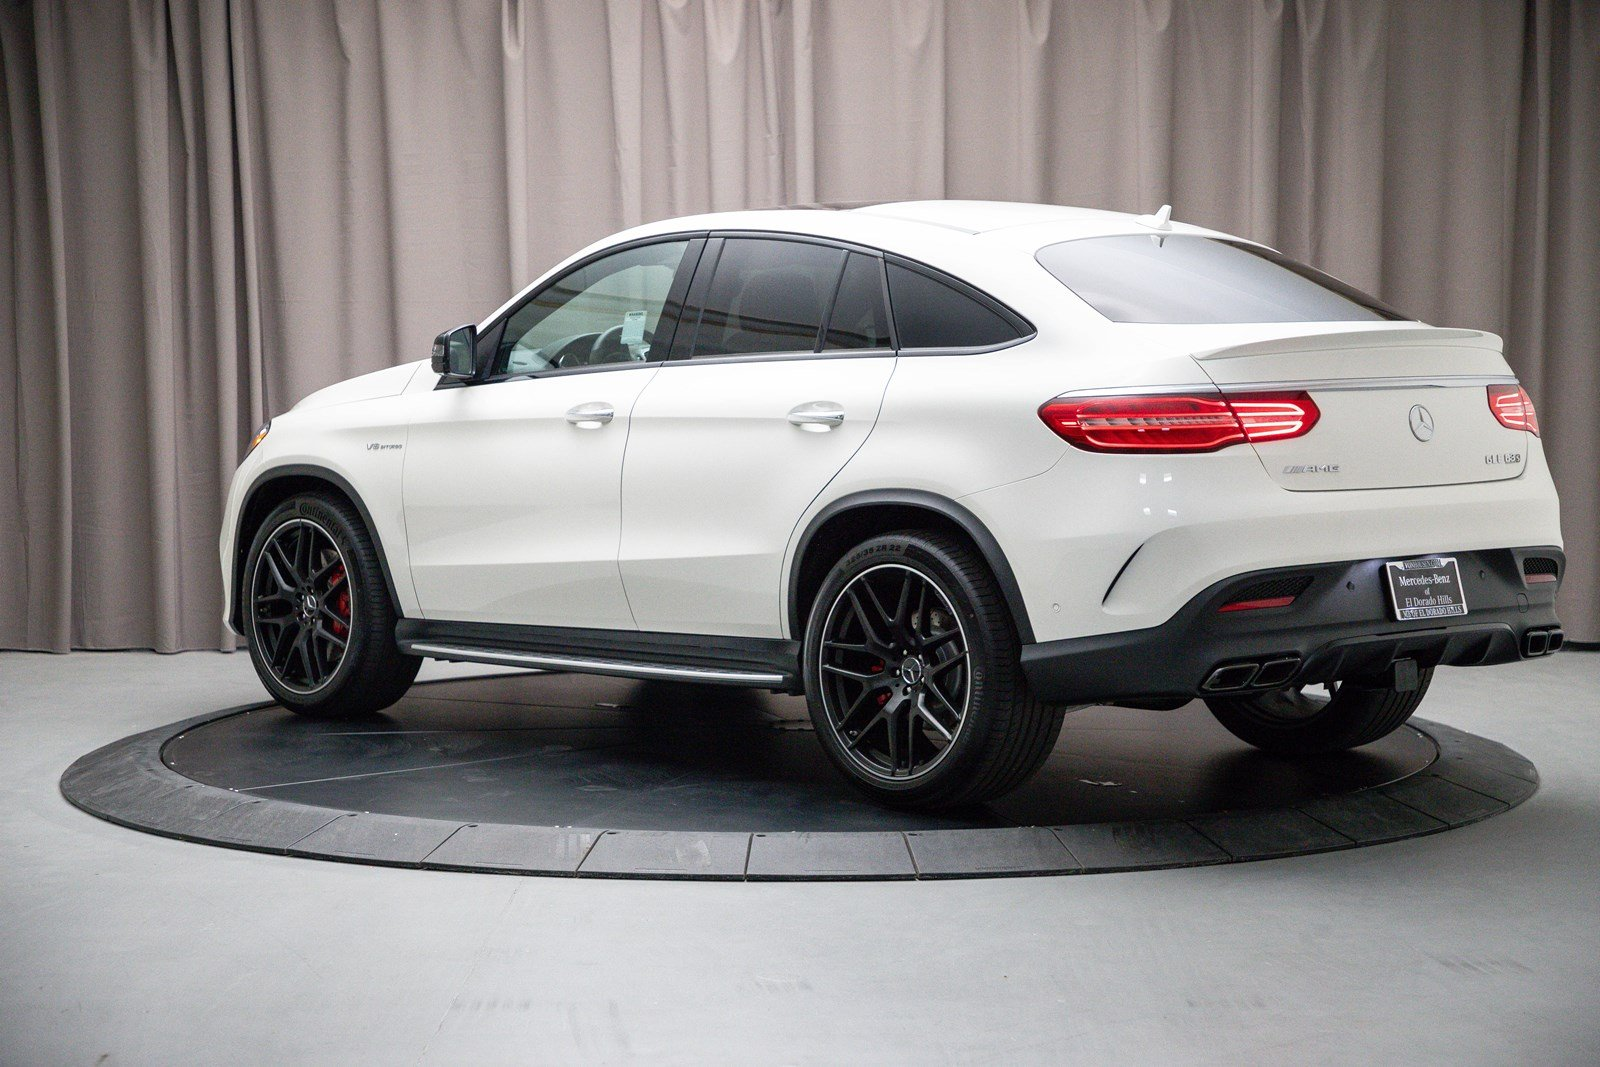 Mercedes Benz Amg >> New 2019 Mercedes Benz Amg Gle 63 S Coupe Awd 4matic